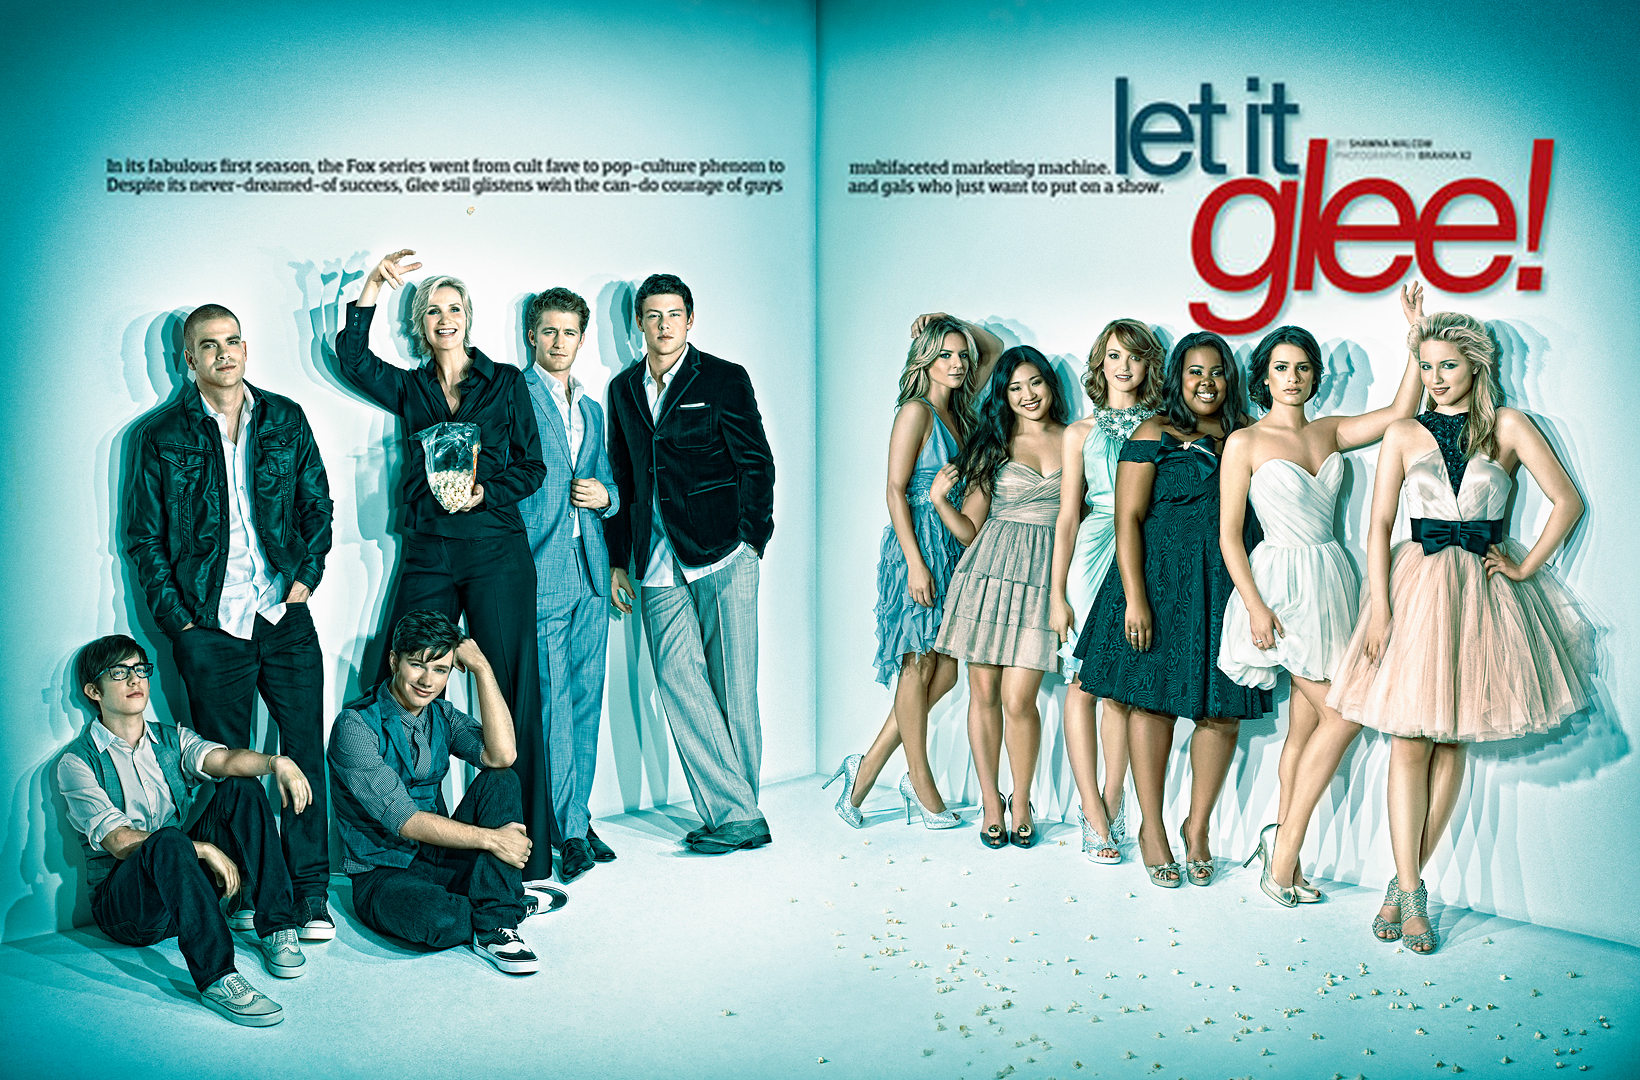 glee_emmy_spread_1080